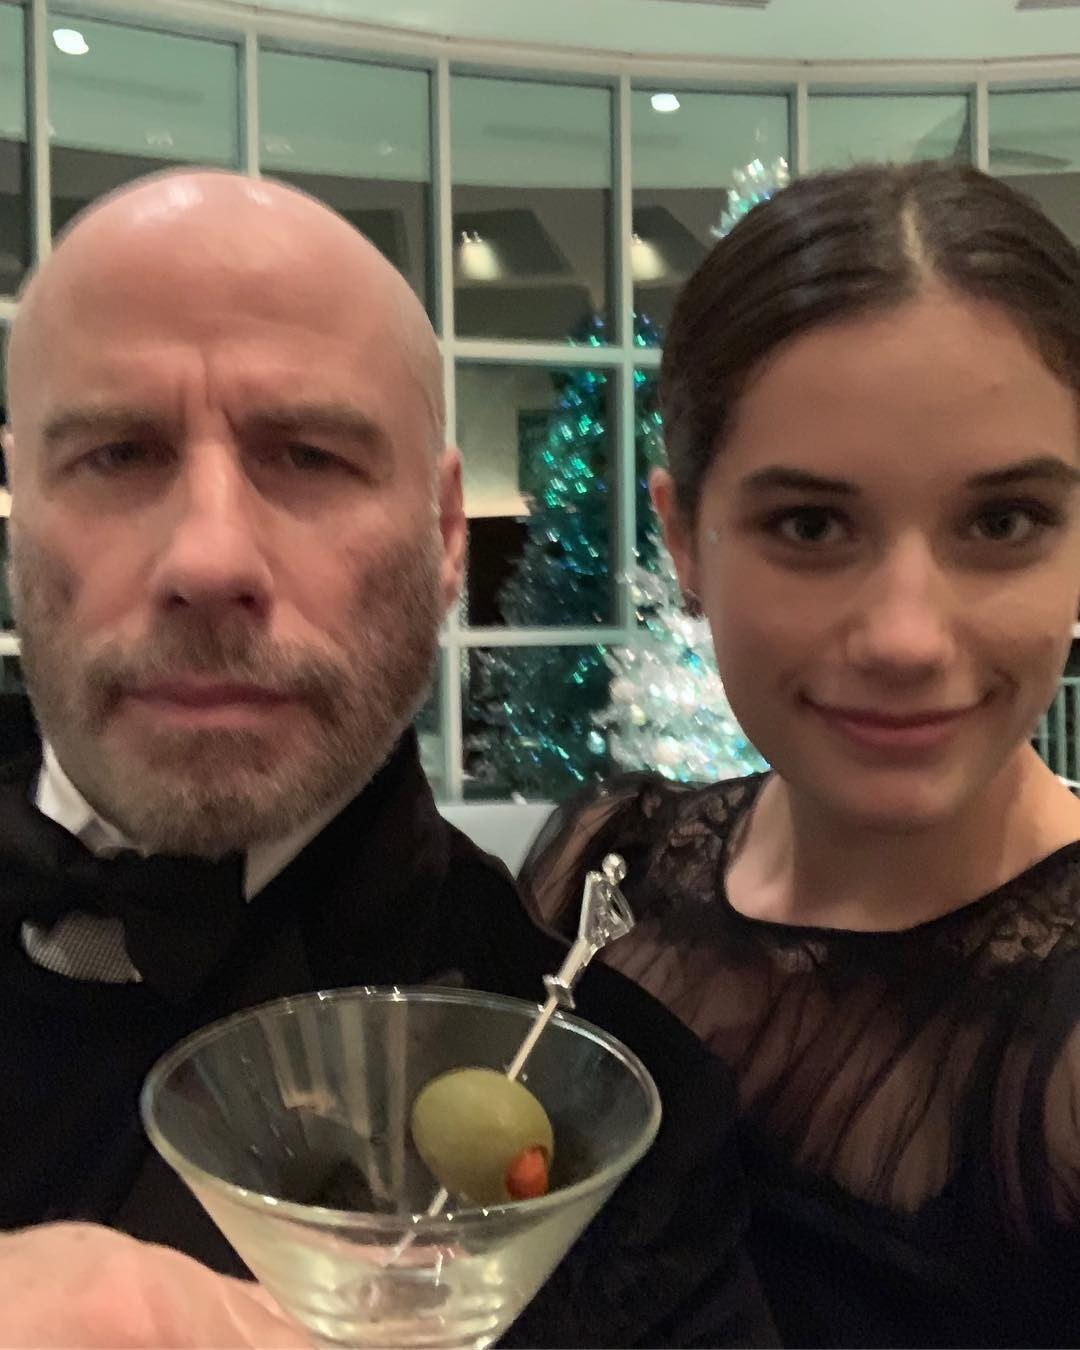 John Travolta Shows off Newly Shaved Head in New Year's Selfie